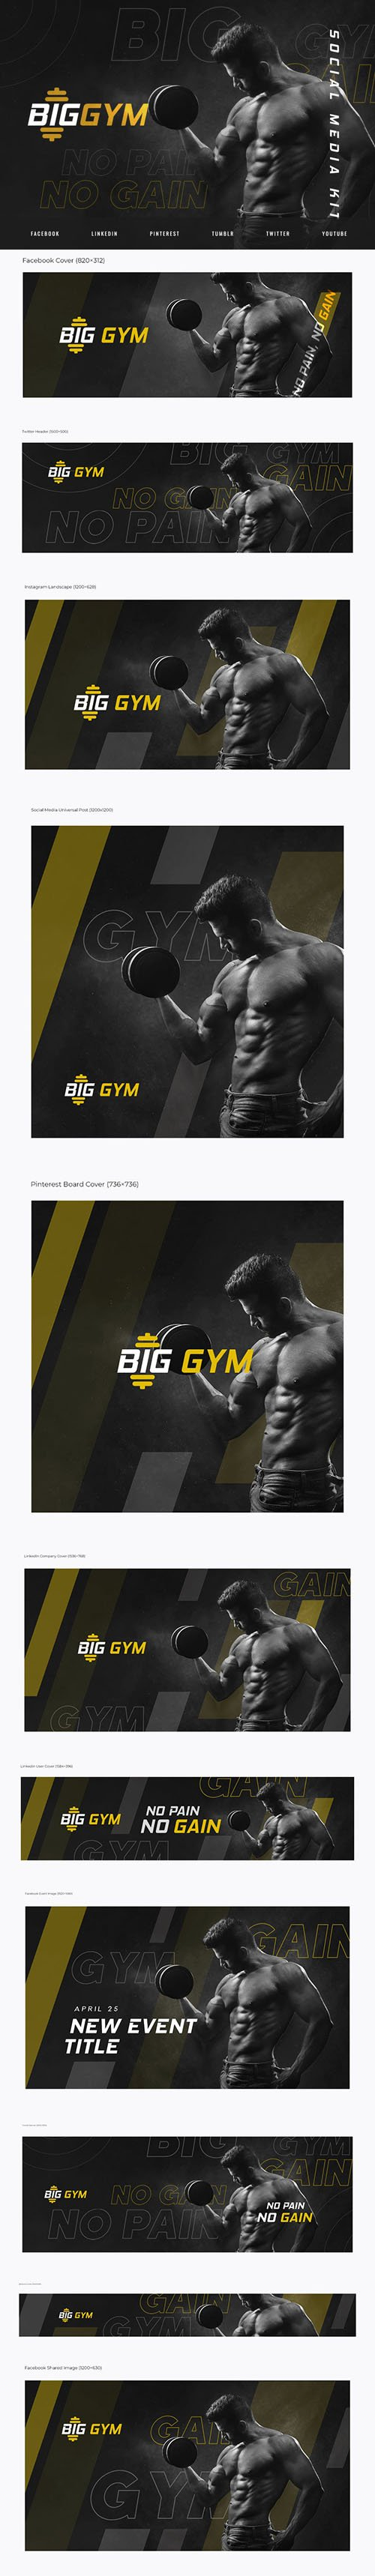 Gym & Personal Fitness Trainer - Social Media Kit